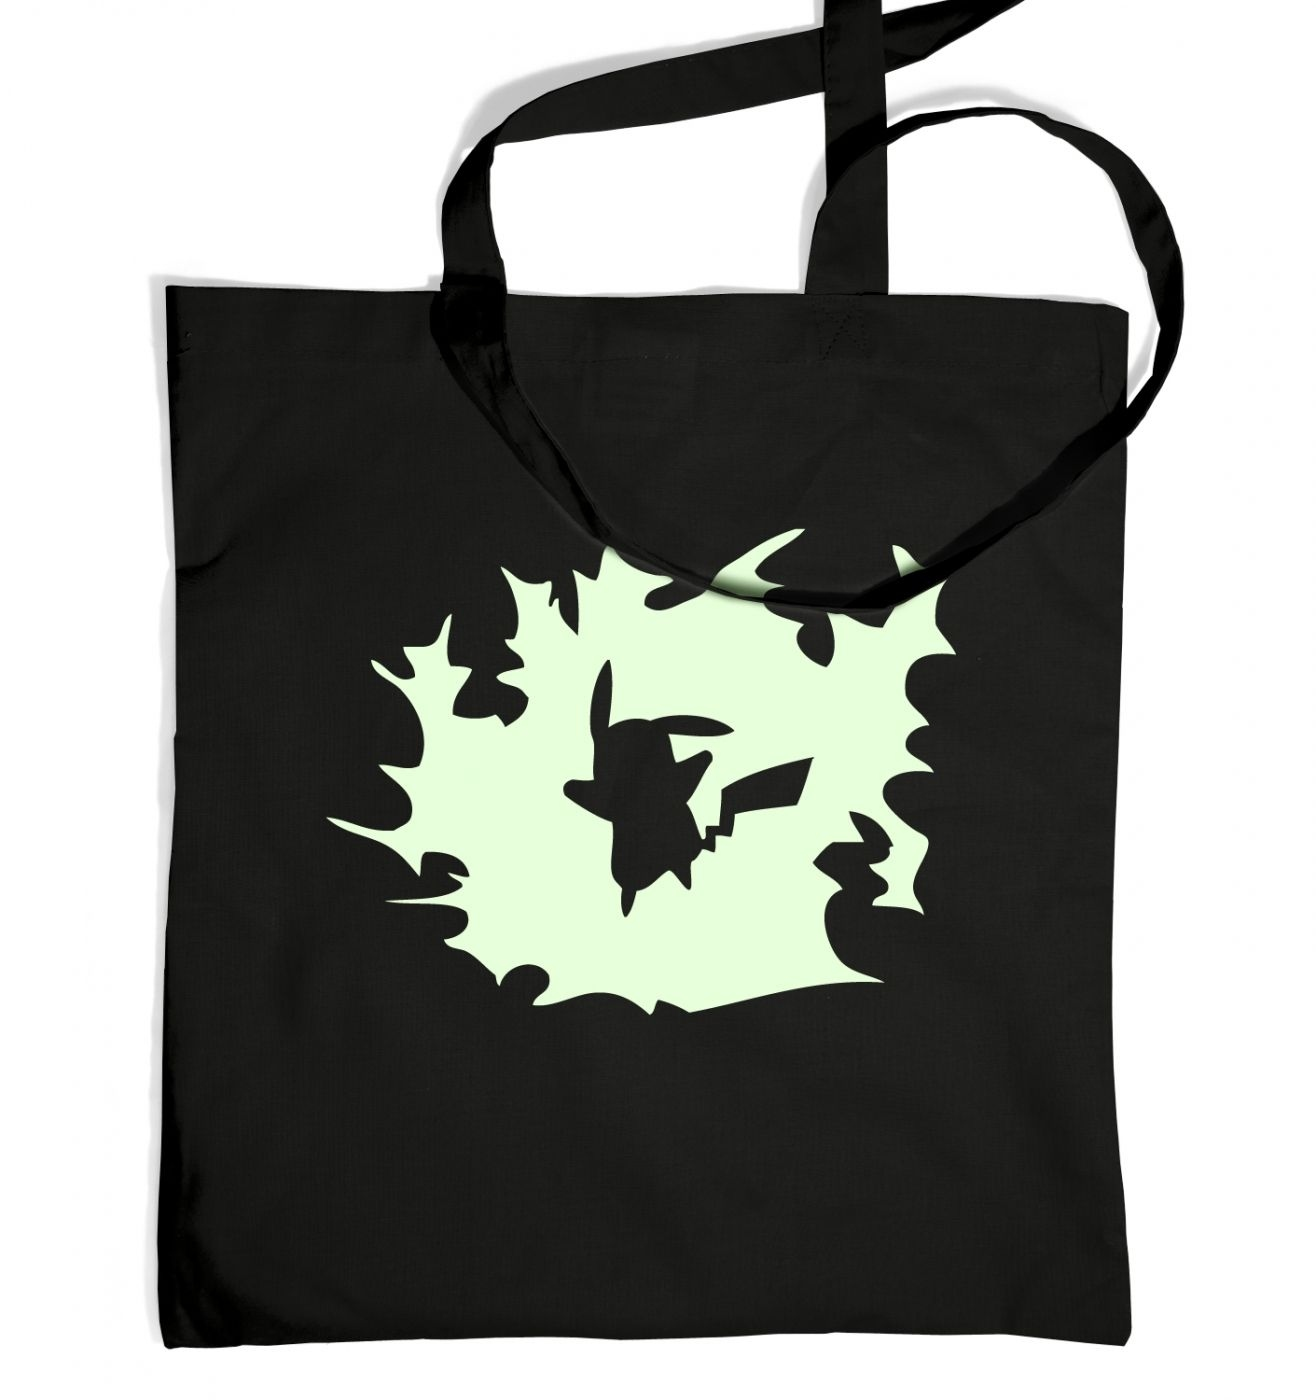 Glowing Pikachu Silhouette Tote Bag - Inspired by Pokemon